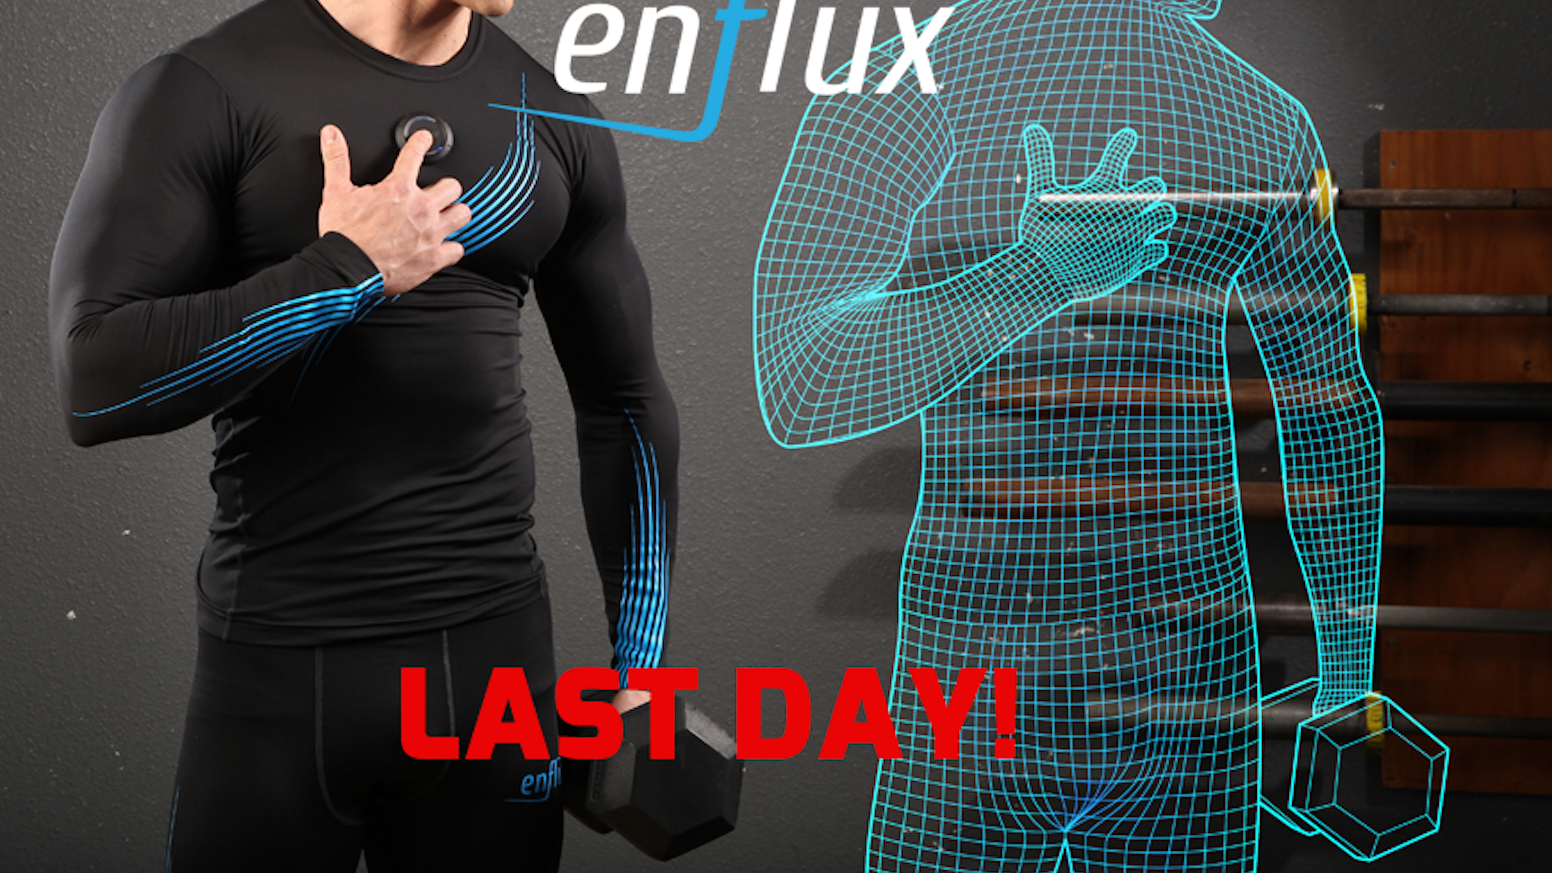 Enflux Exercise Clothing Real Time 3d Analysis Better Form By Circuit Board Tshirt Computer Geek Tee Mens Shirt Smart Kickstarter